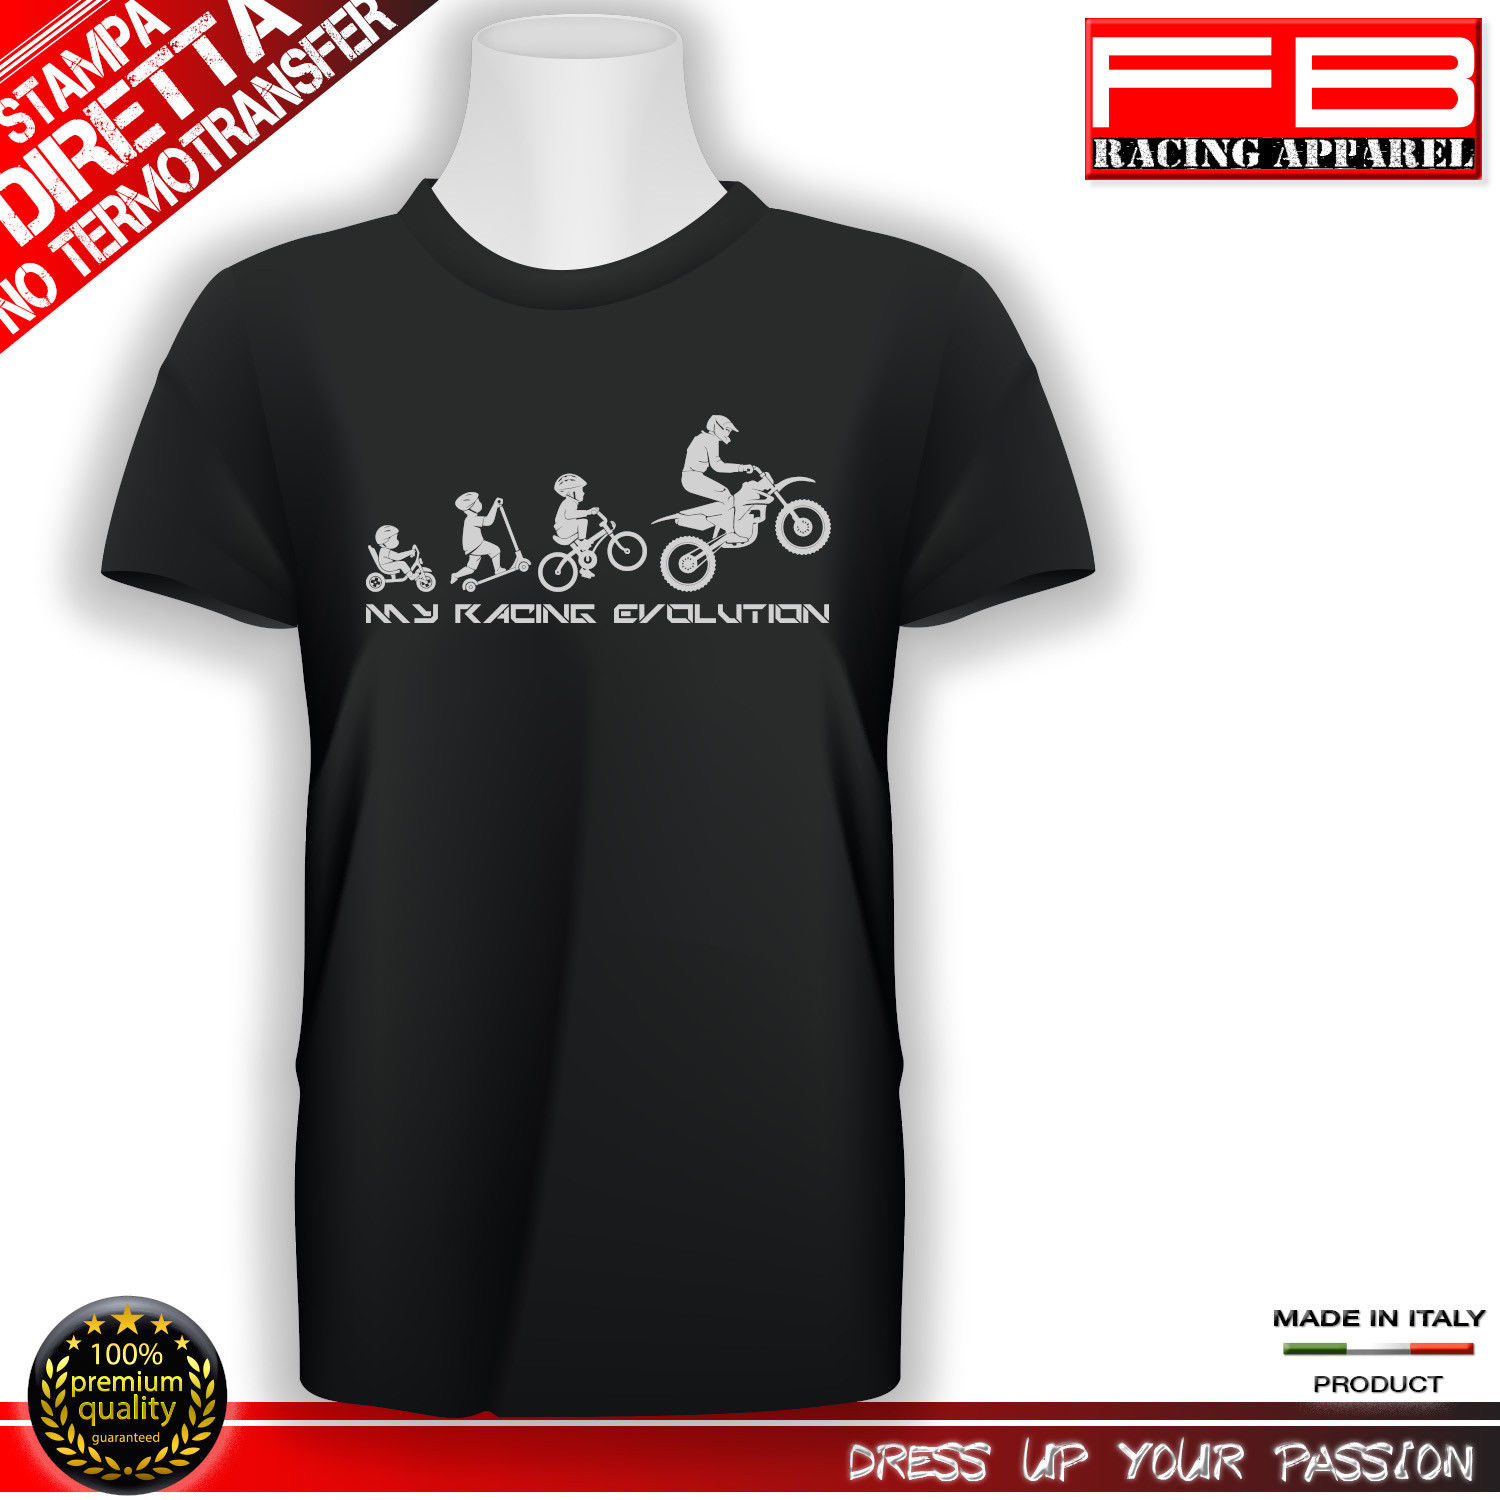 New Unisex Yamaha MT 10 Racing Motorcycle Tribute Casual T-Shirt Sizes S to XXL